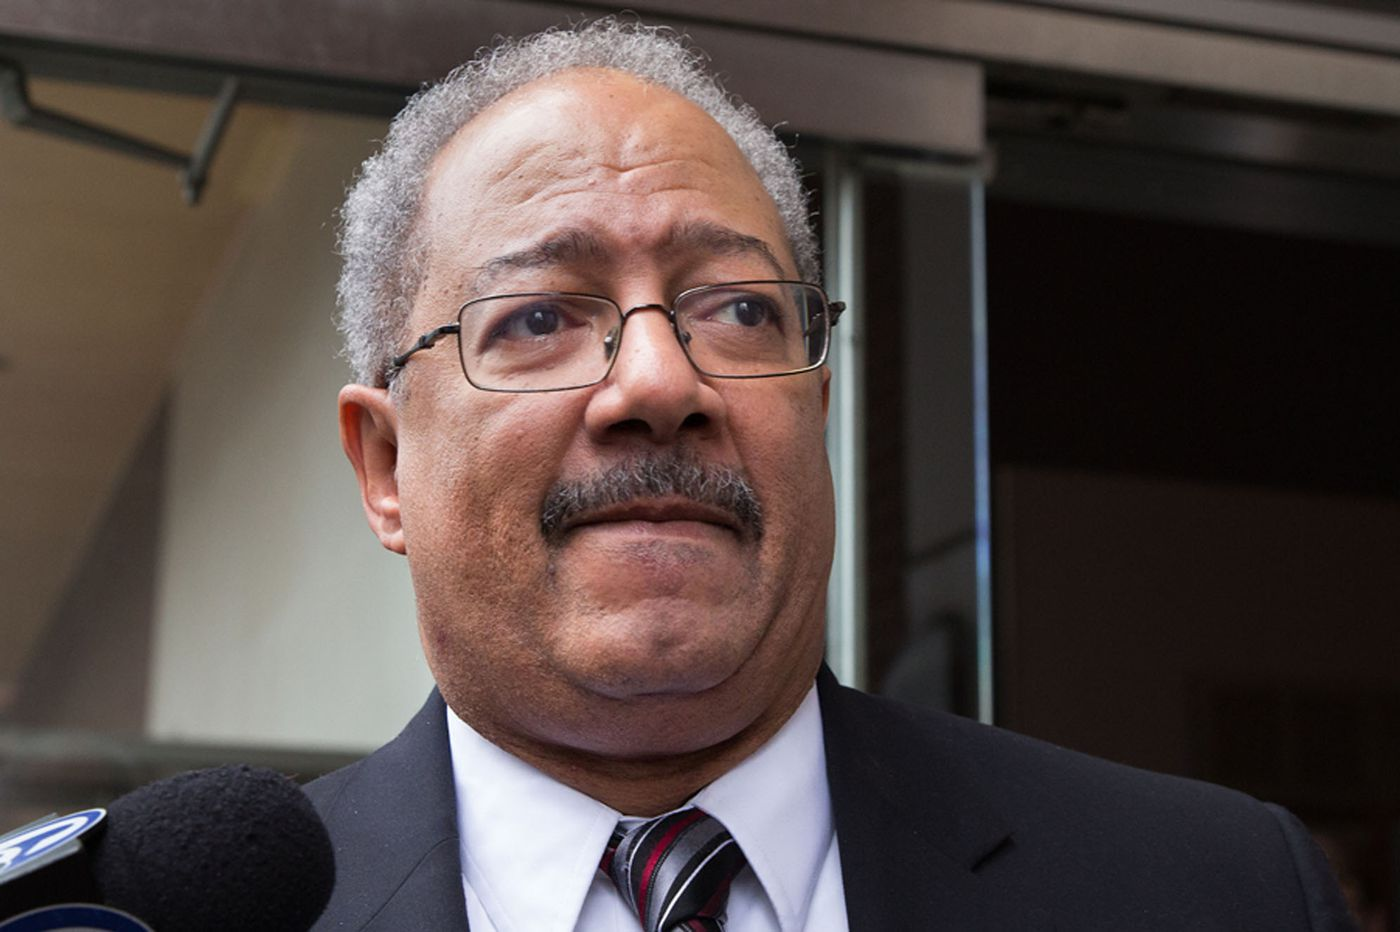 Chaka Fattah loses bid to have U.S. Supreme Court consider his appeal